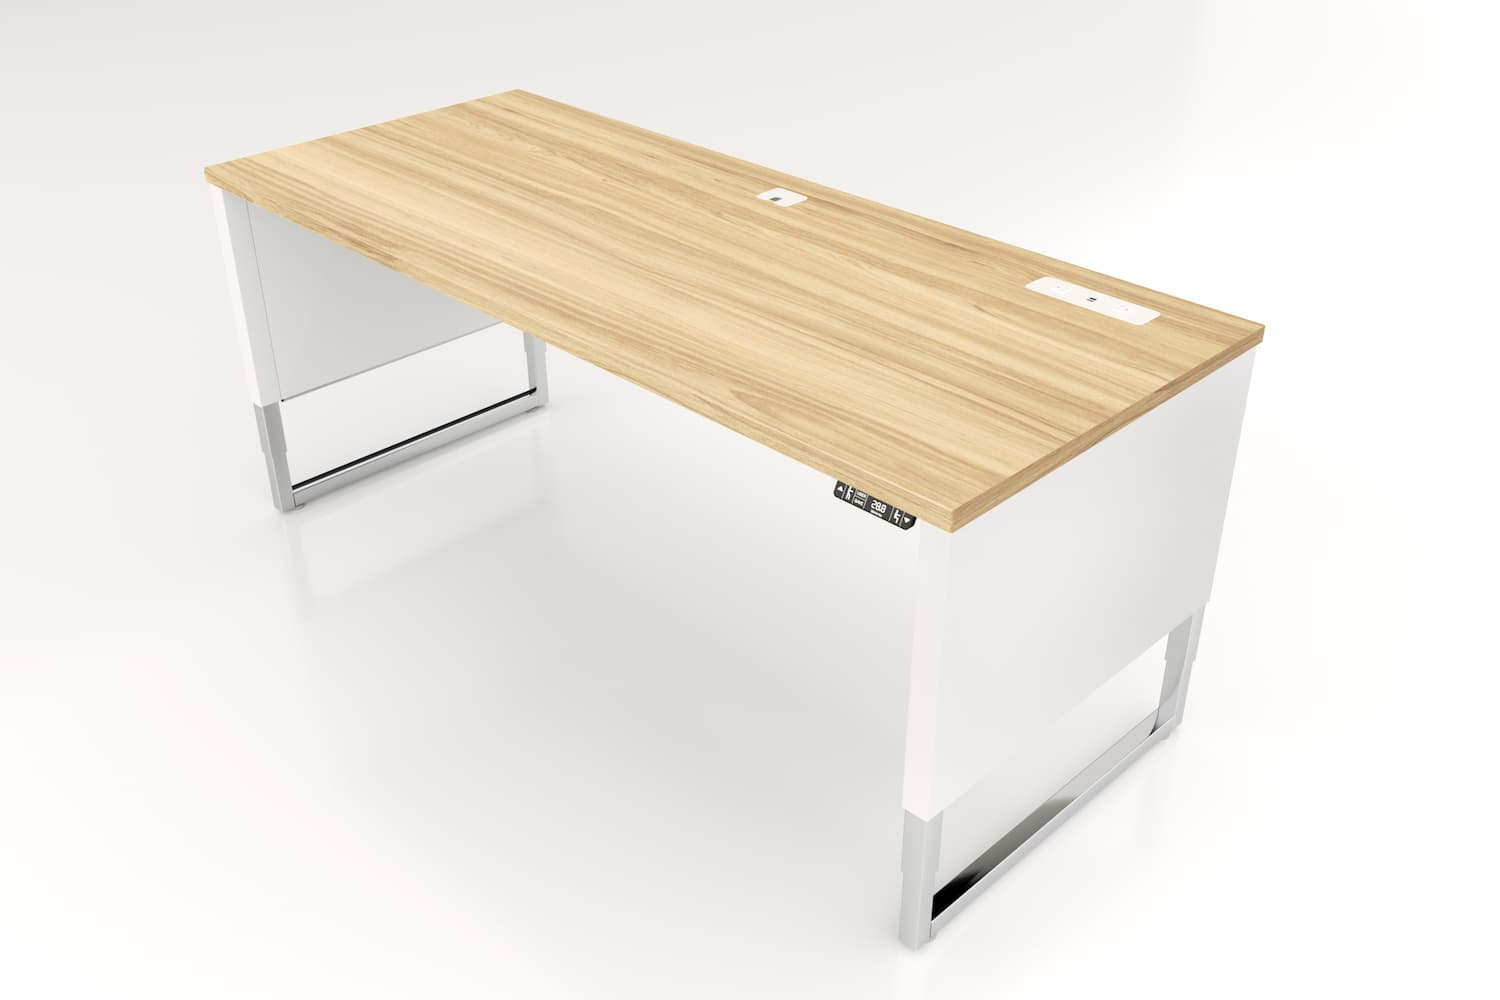 Advent-Desk-ADV-7230-WH-Custom-Top-5